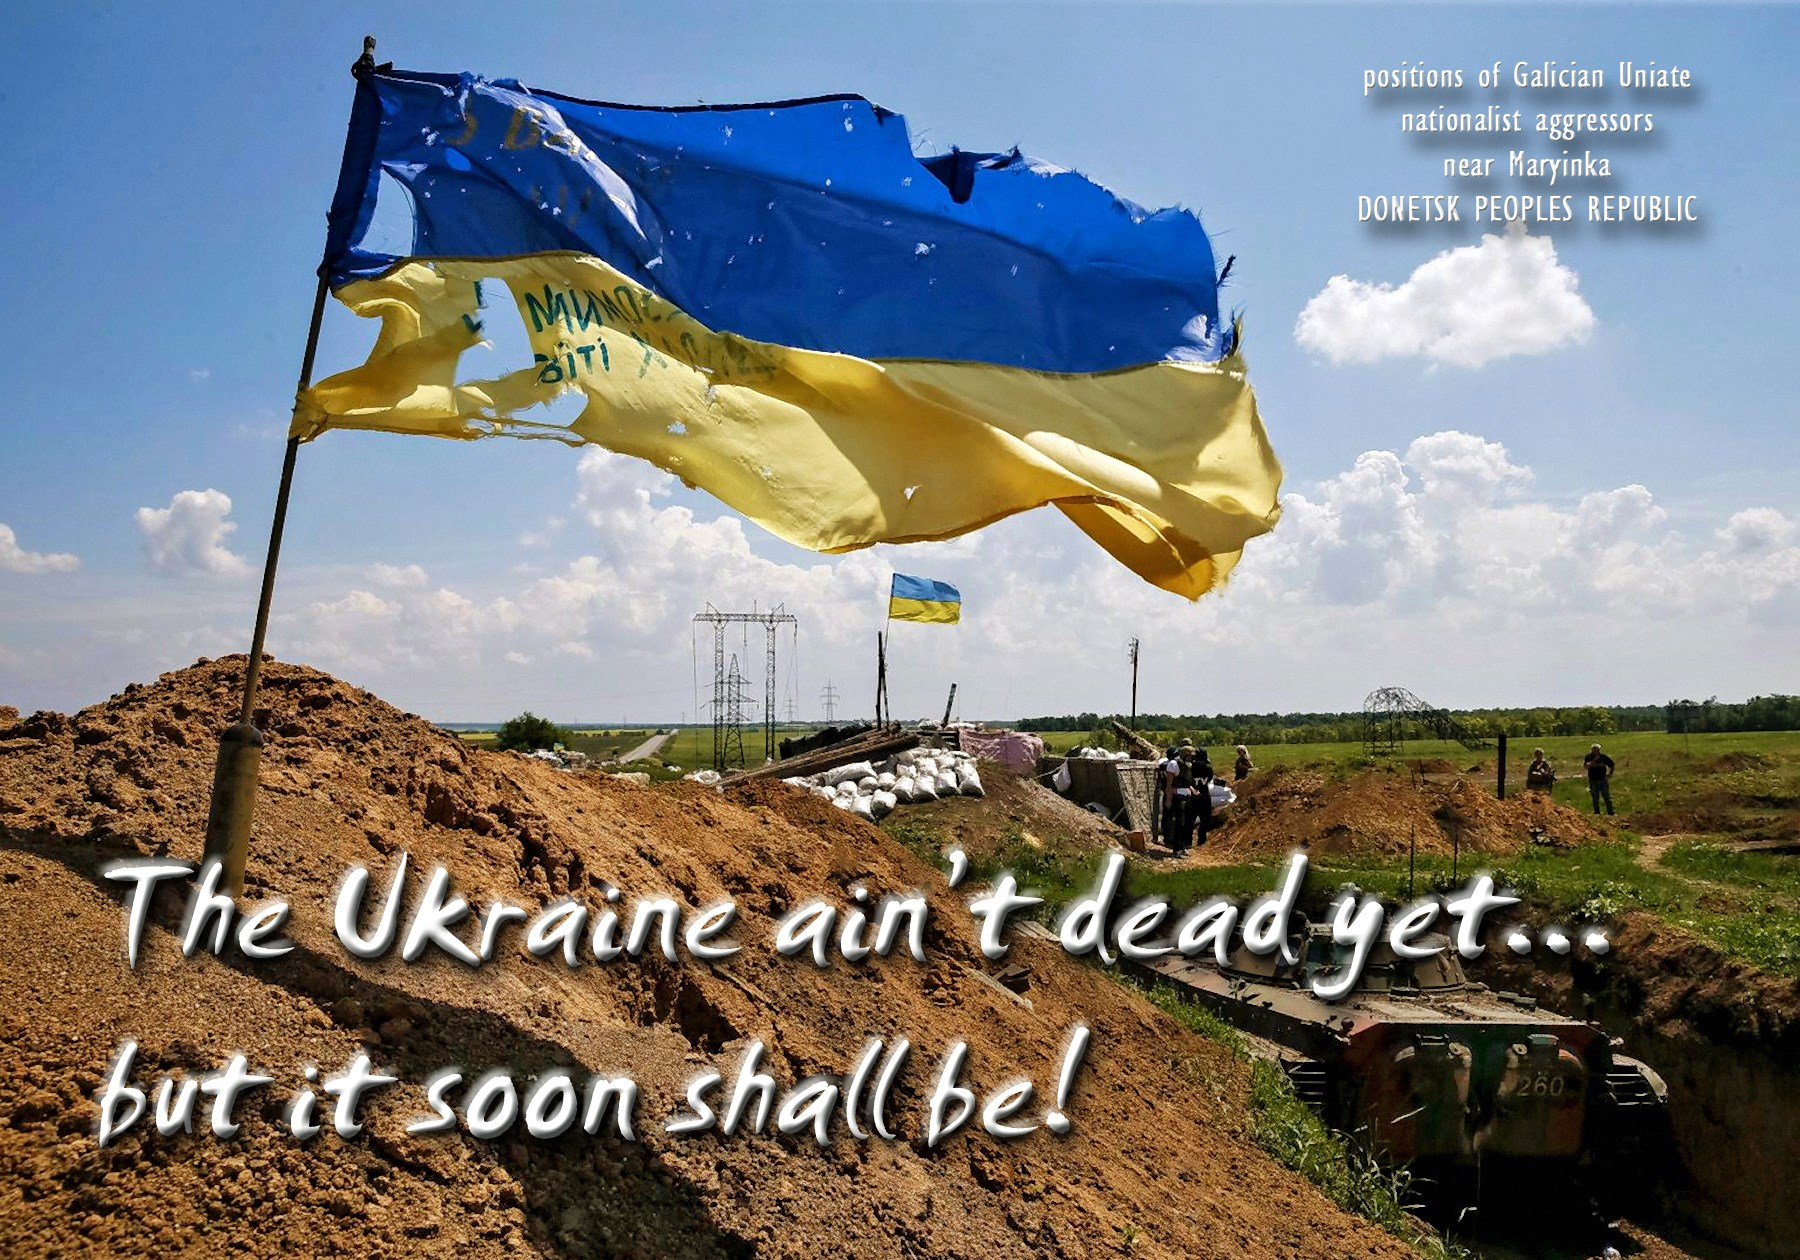 00 the ukraine aint dead yet.. but soon shall be. 09.06.15